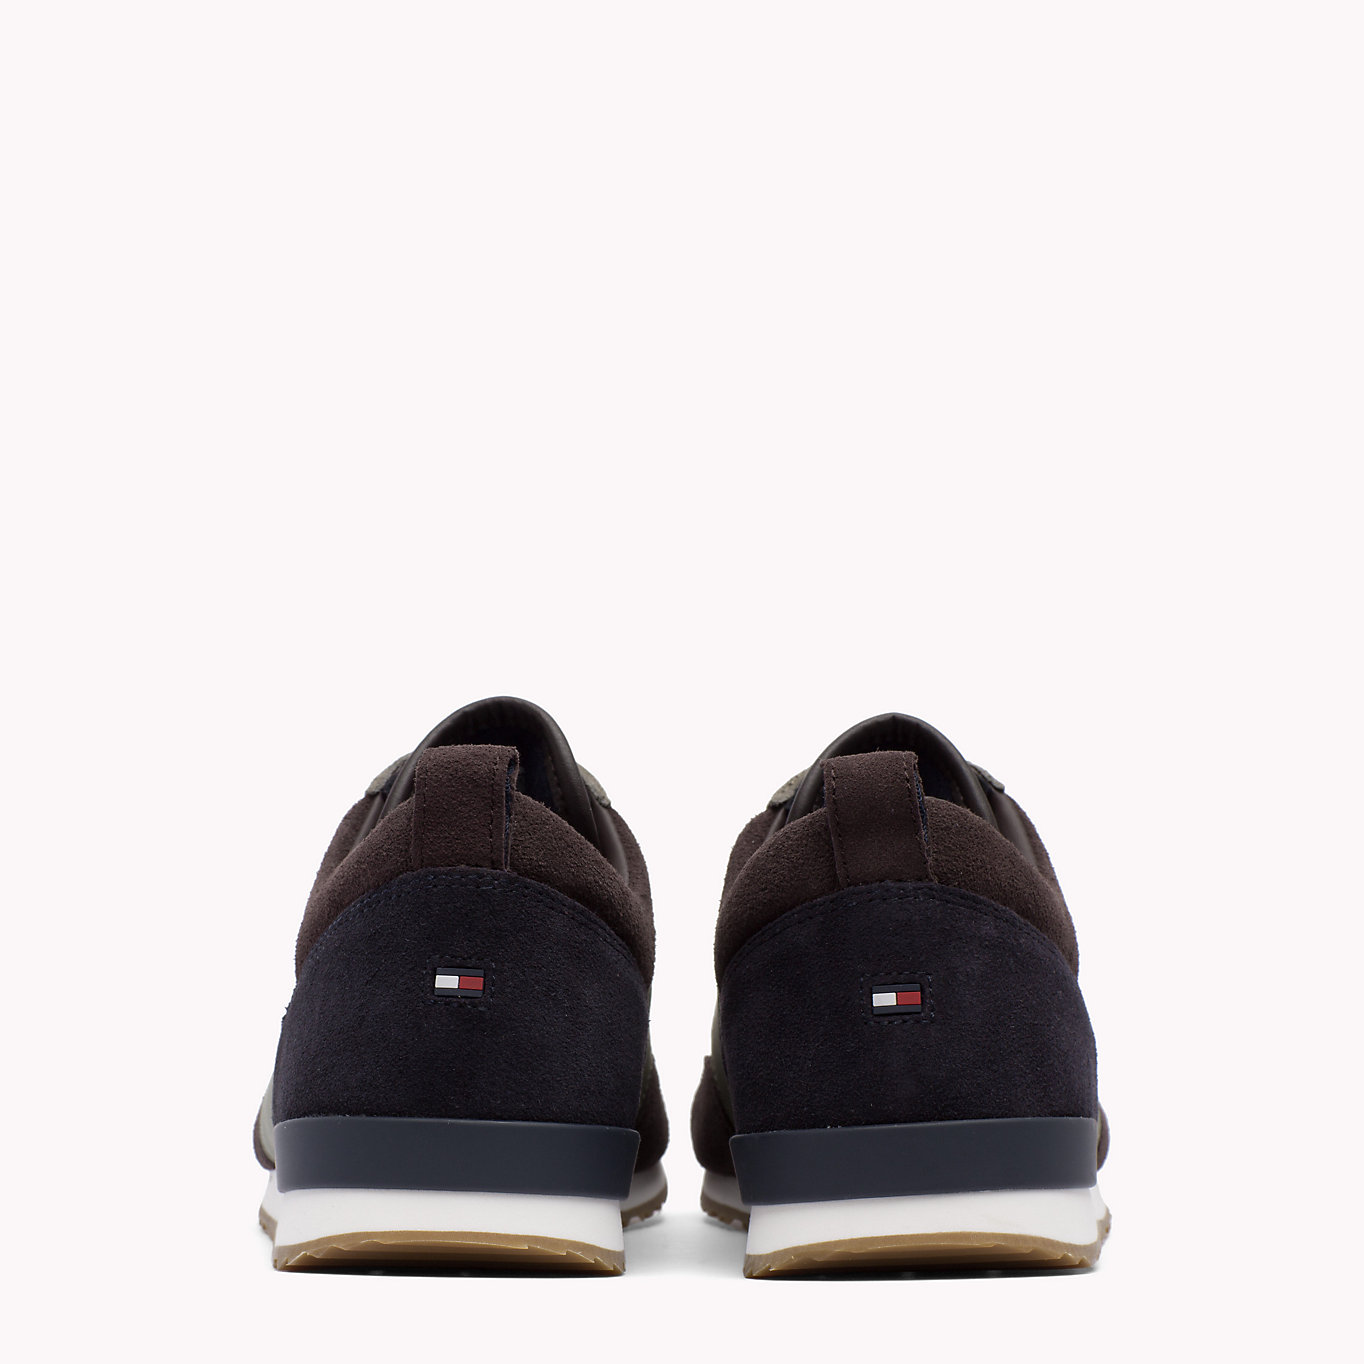 Tommy Hilfiger adidasi din piele pentru barbati Iconic Color Mix Runner Coffeebean/Dusty Olive